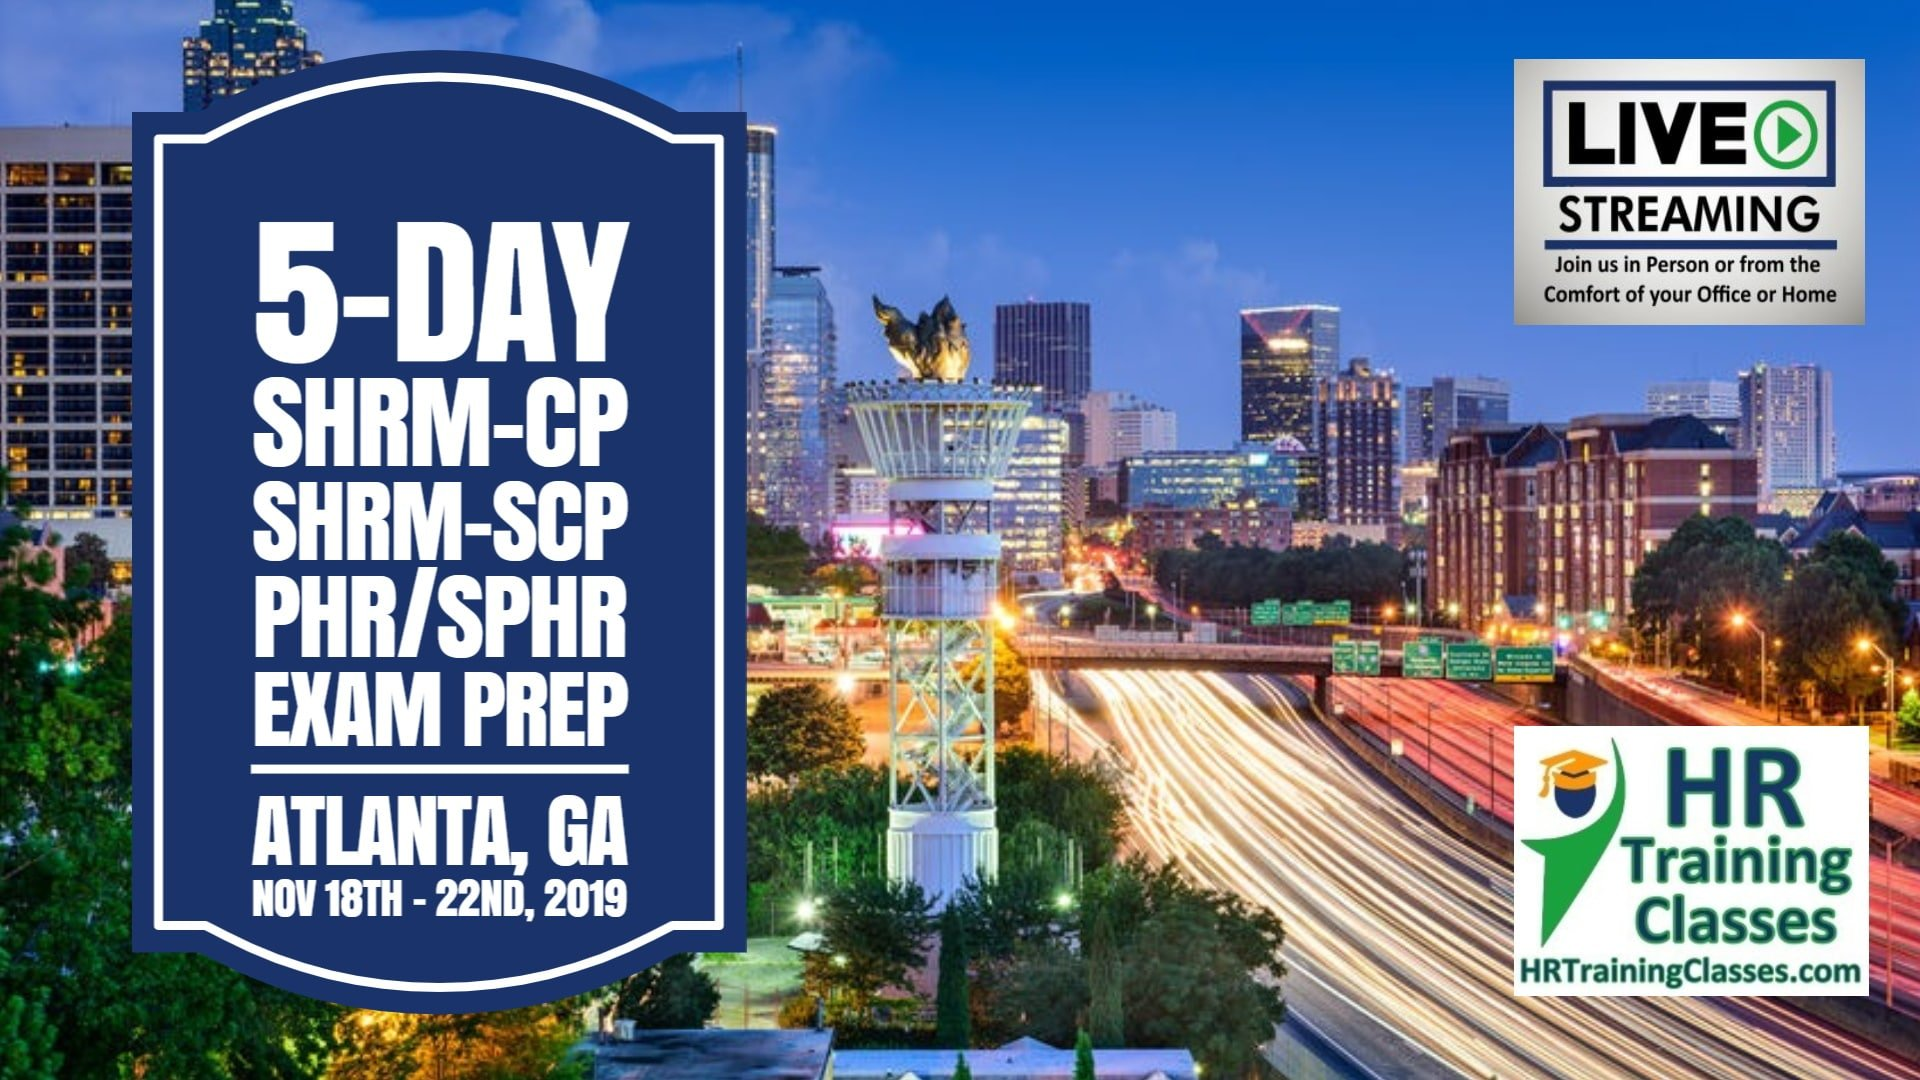 5 Day SHRM-CP, SHRM-SCP, PHR, SPHR Exam Prep Boot Camp in Atlanta, GA (Starts 11/18/2019)